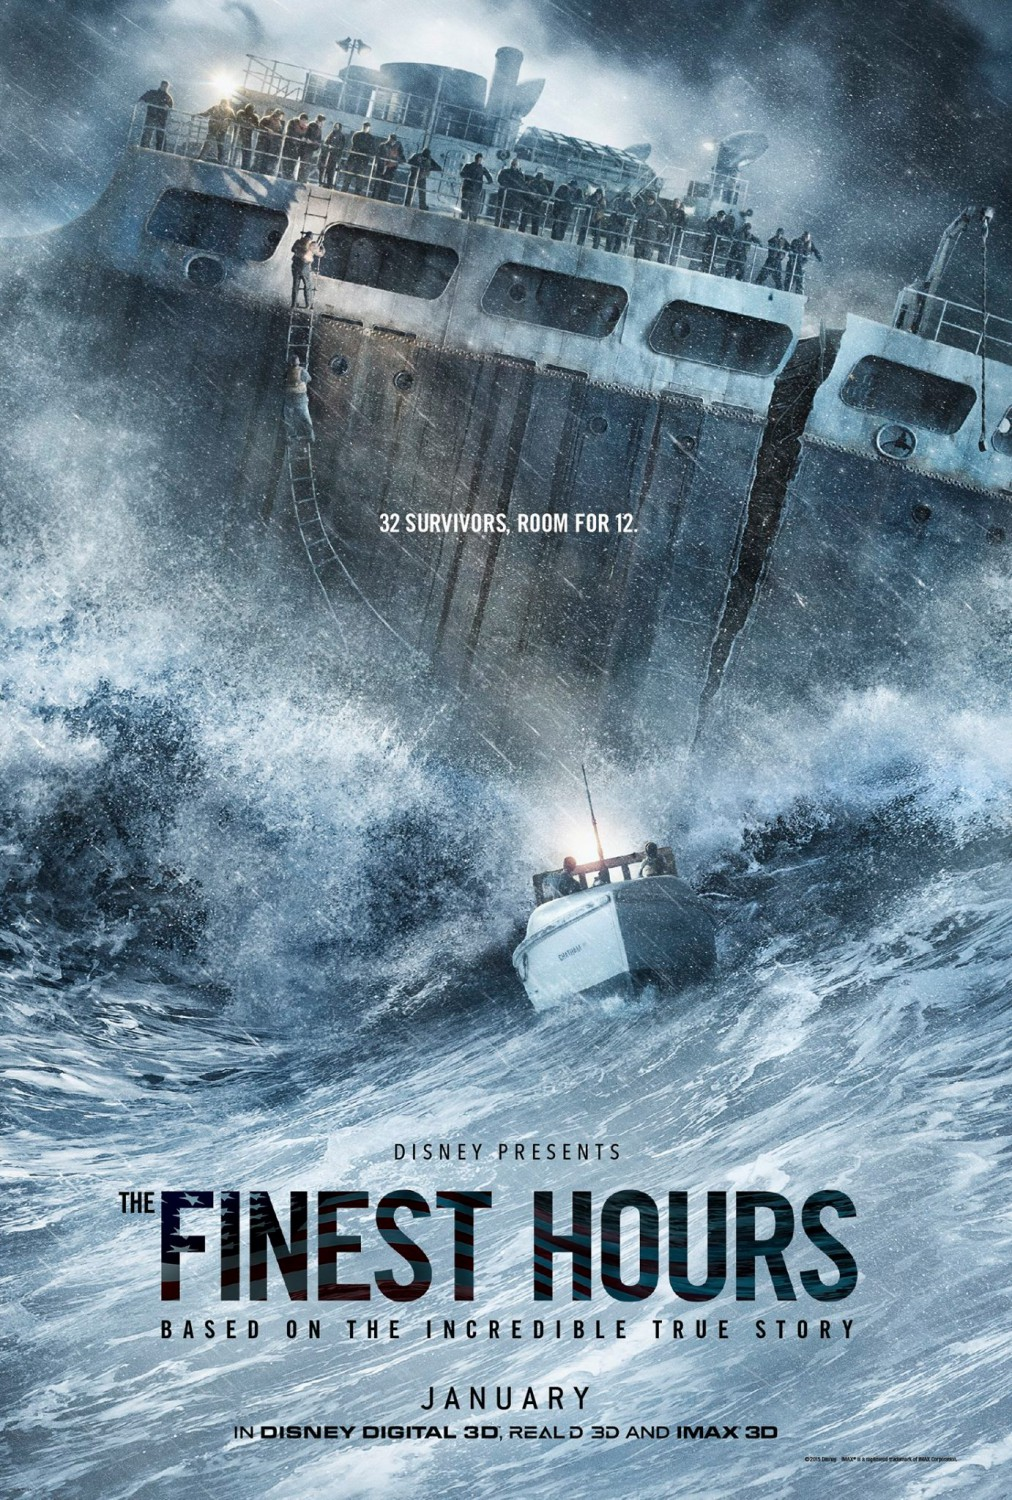 14 - The Finest Hours